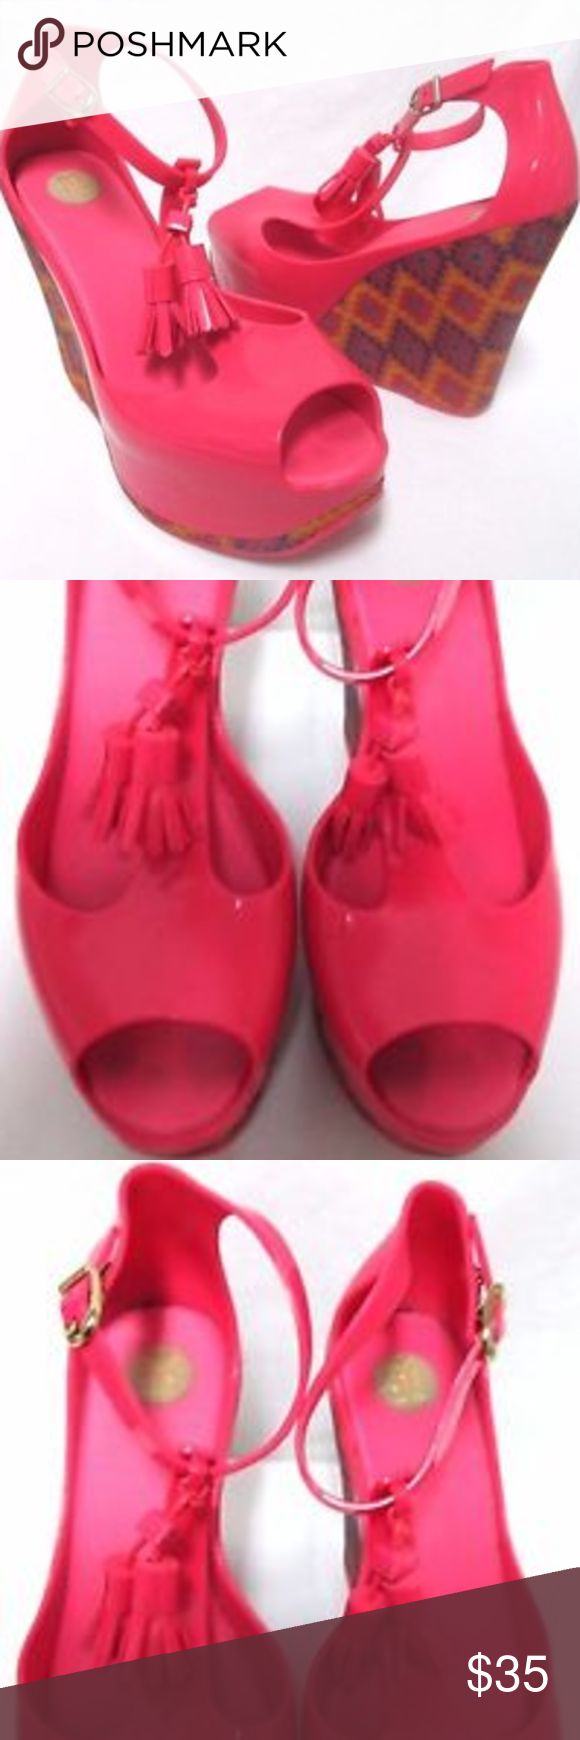 "Melissa pink wedge tassle peep toe heels Size Sz 8 Melissa shoes in excellent used condition. Size 37 Brazil or 8 U.S., heel is about 4.7"", front platform is about 1.5"". Pet and smoke free home. Melissa Shoes Sandals"